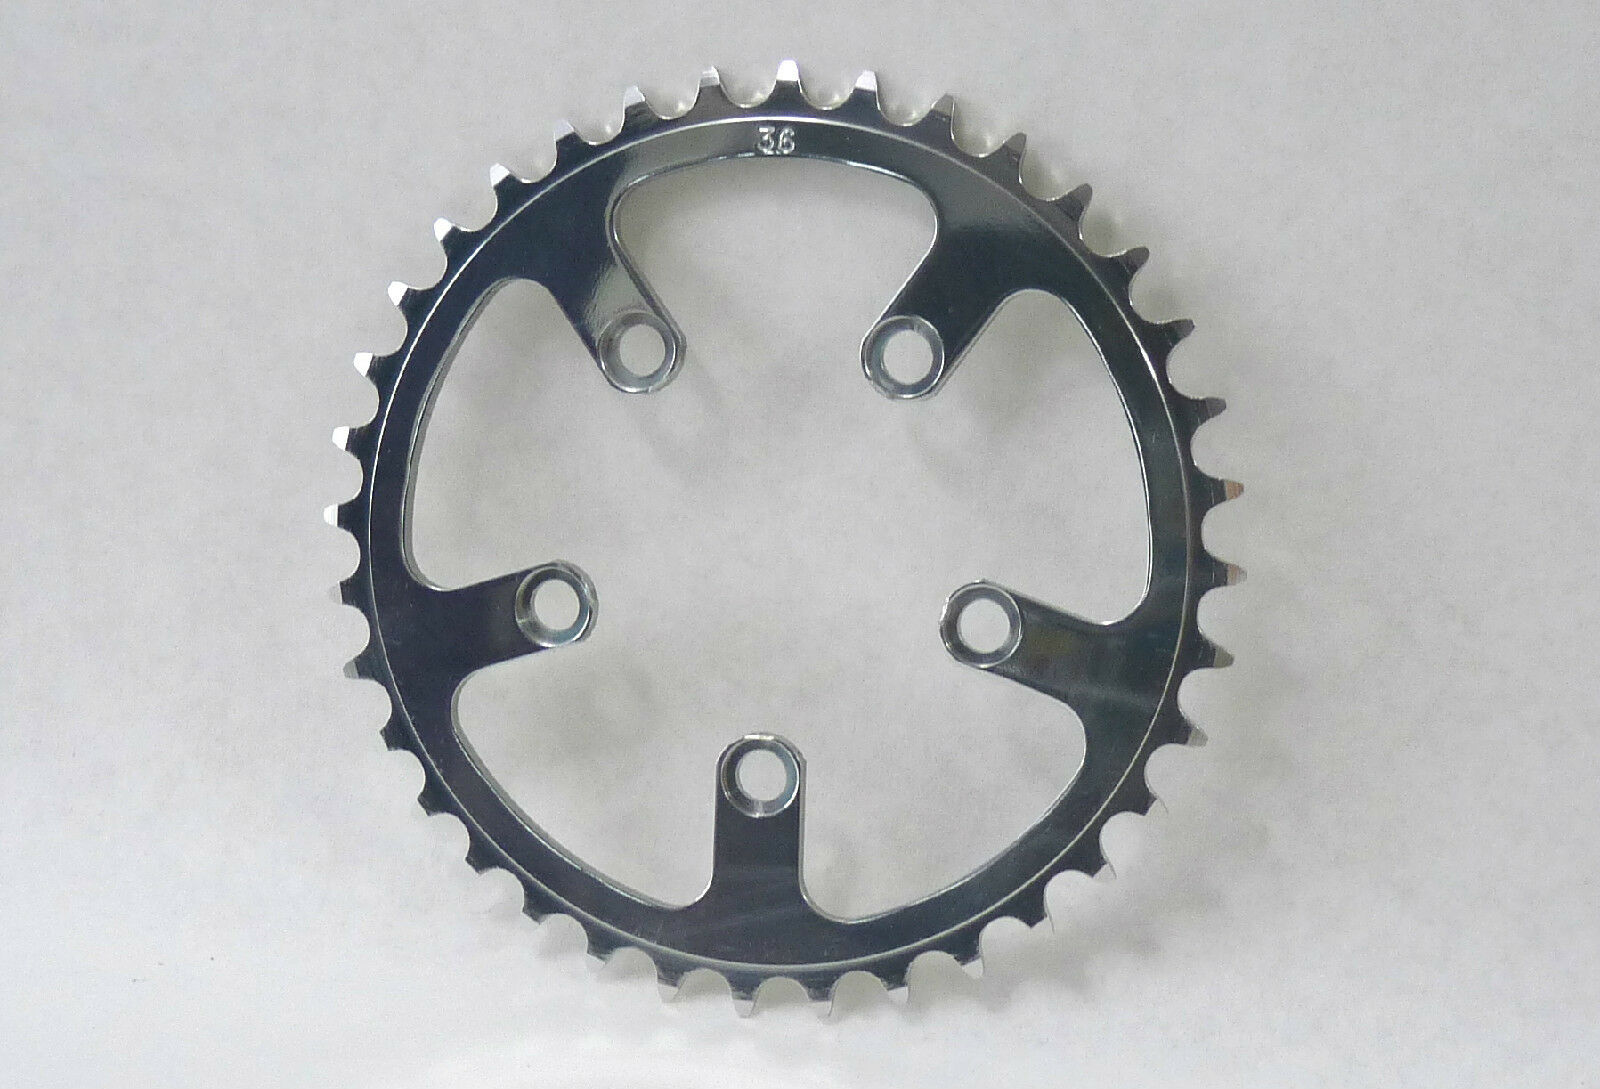 T.A. Chainring 36T 74 BCD  Zicral Aluminum  3 32  VINTAGE old style NOS  large discount